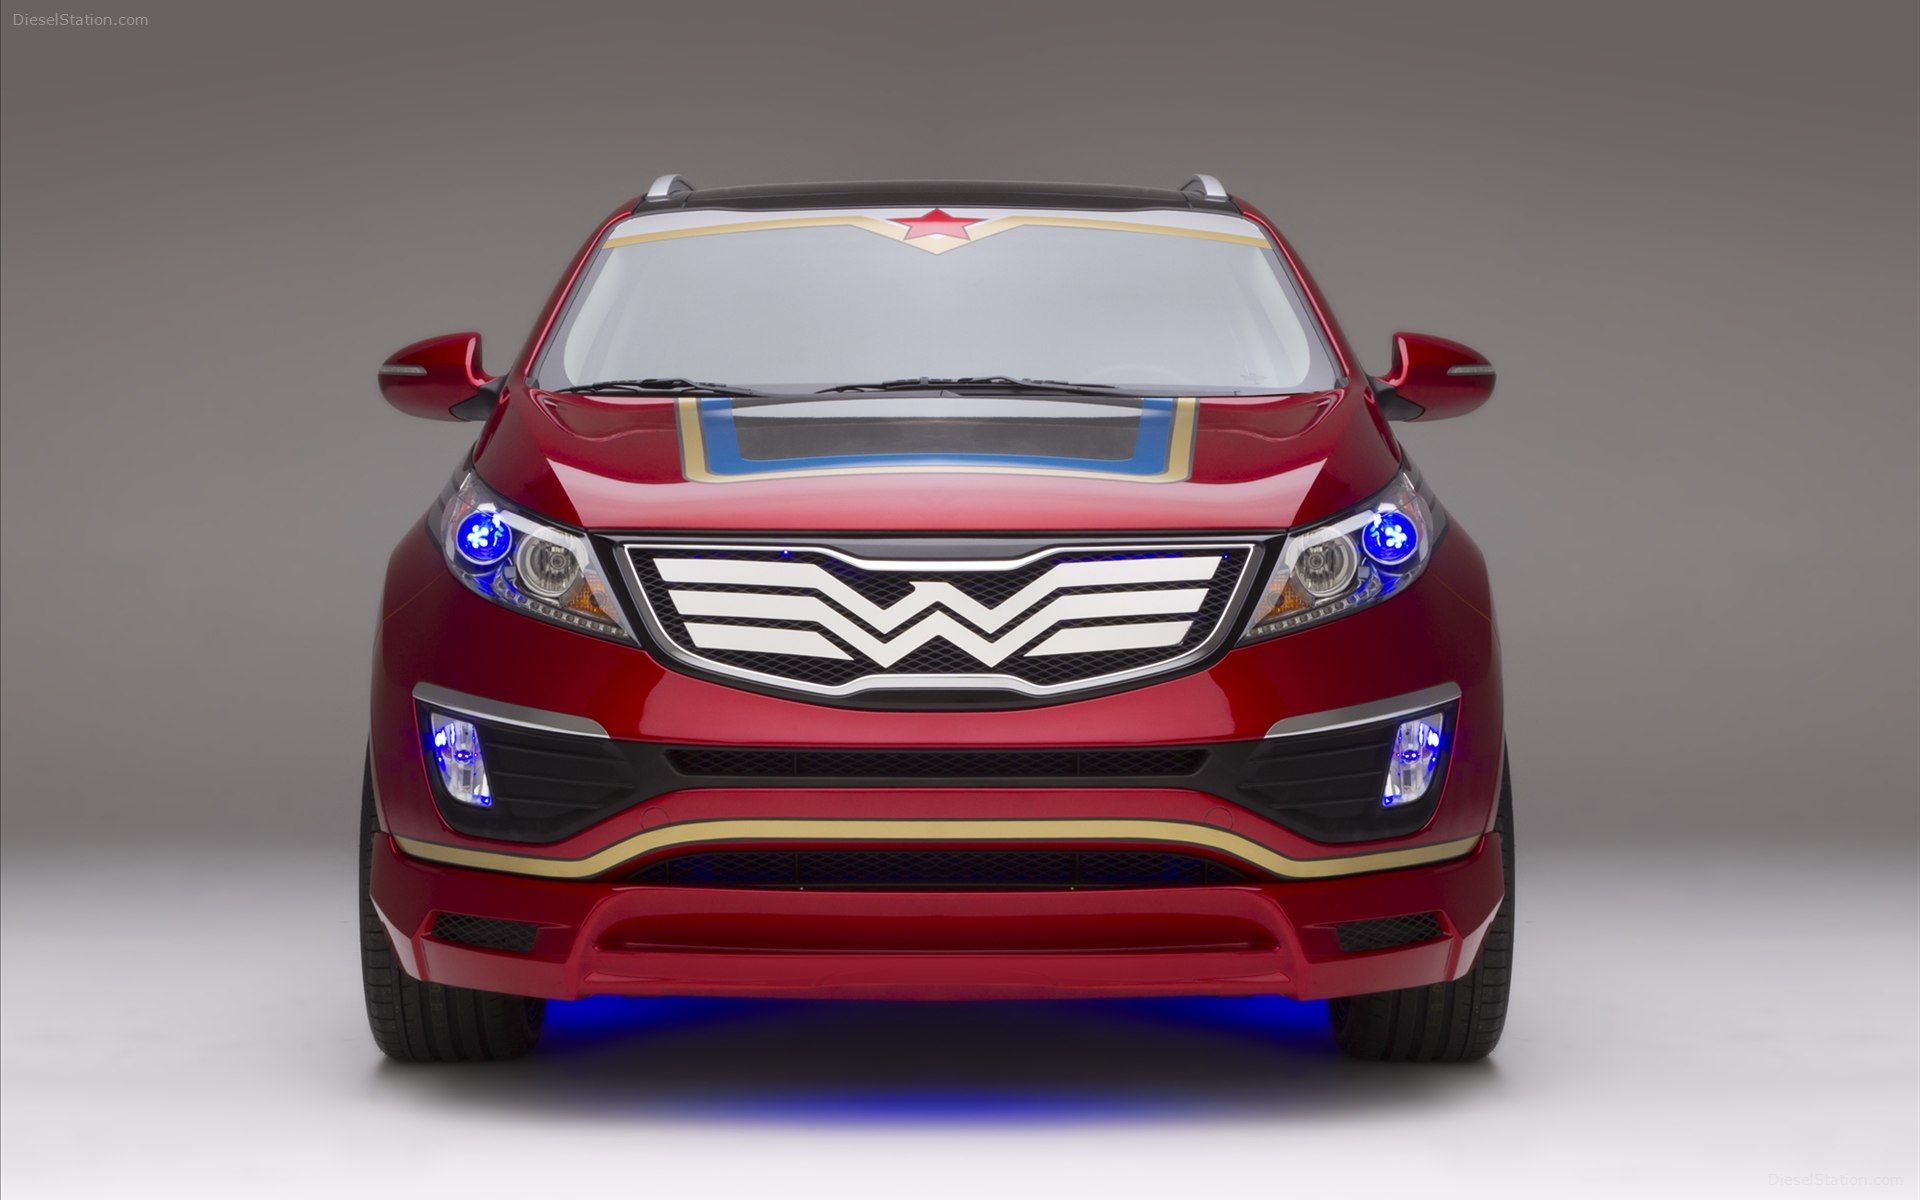 Wonder Woman inspired Sportage front view